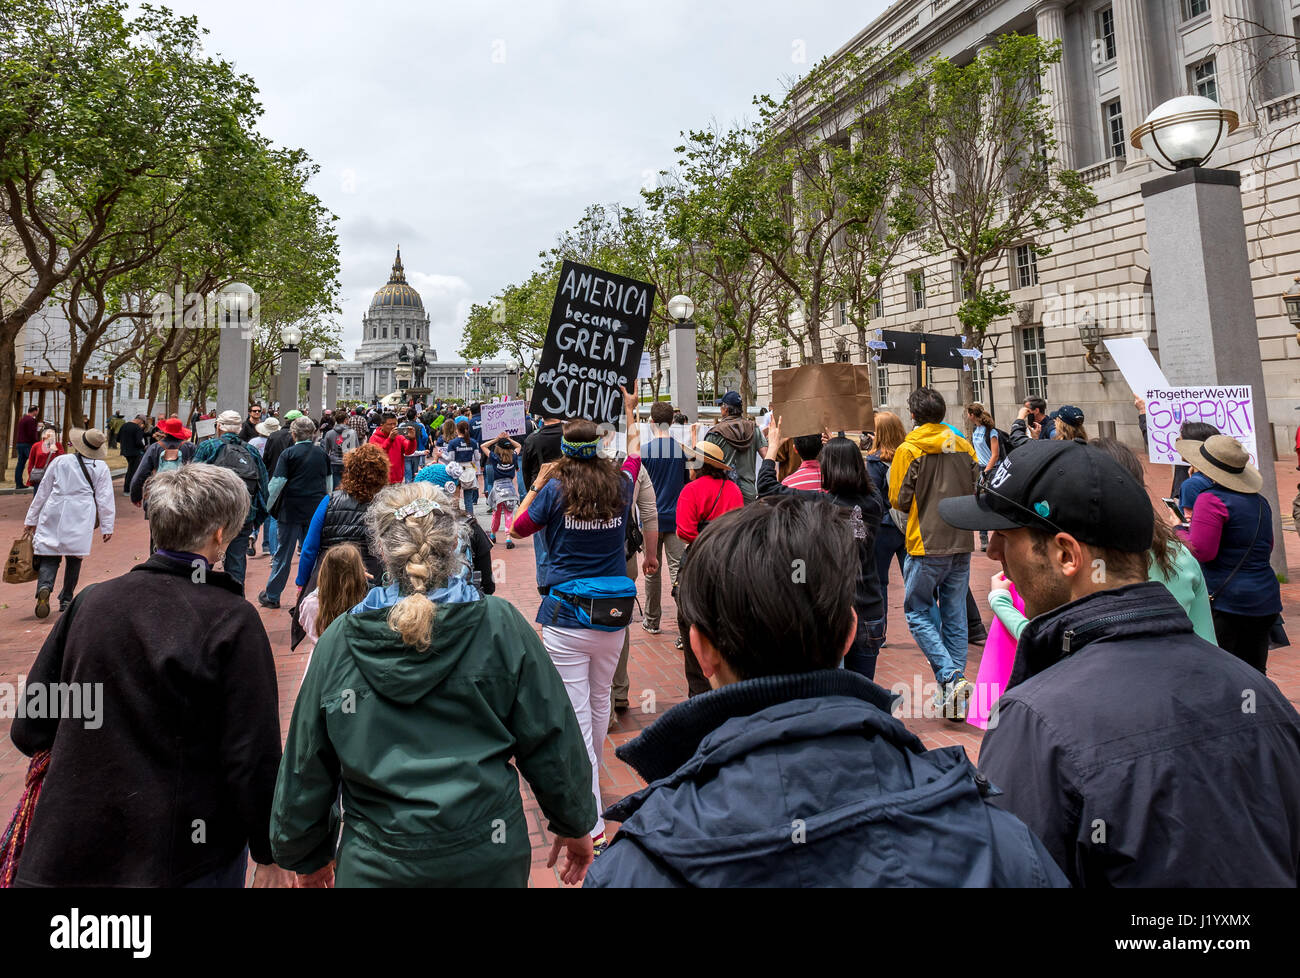 San Francisco, California, USA. 22nd April, 2017. Earth Day marchers approach San Francisco City Hall and the Civic Stock Photo